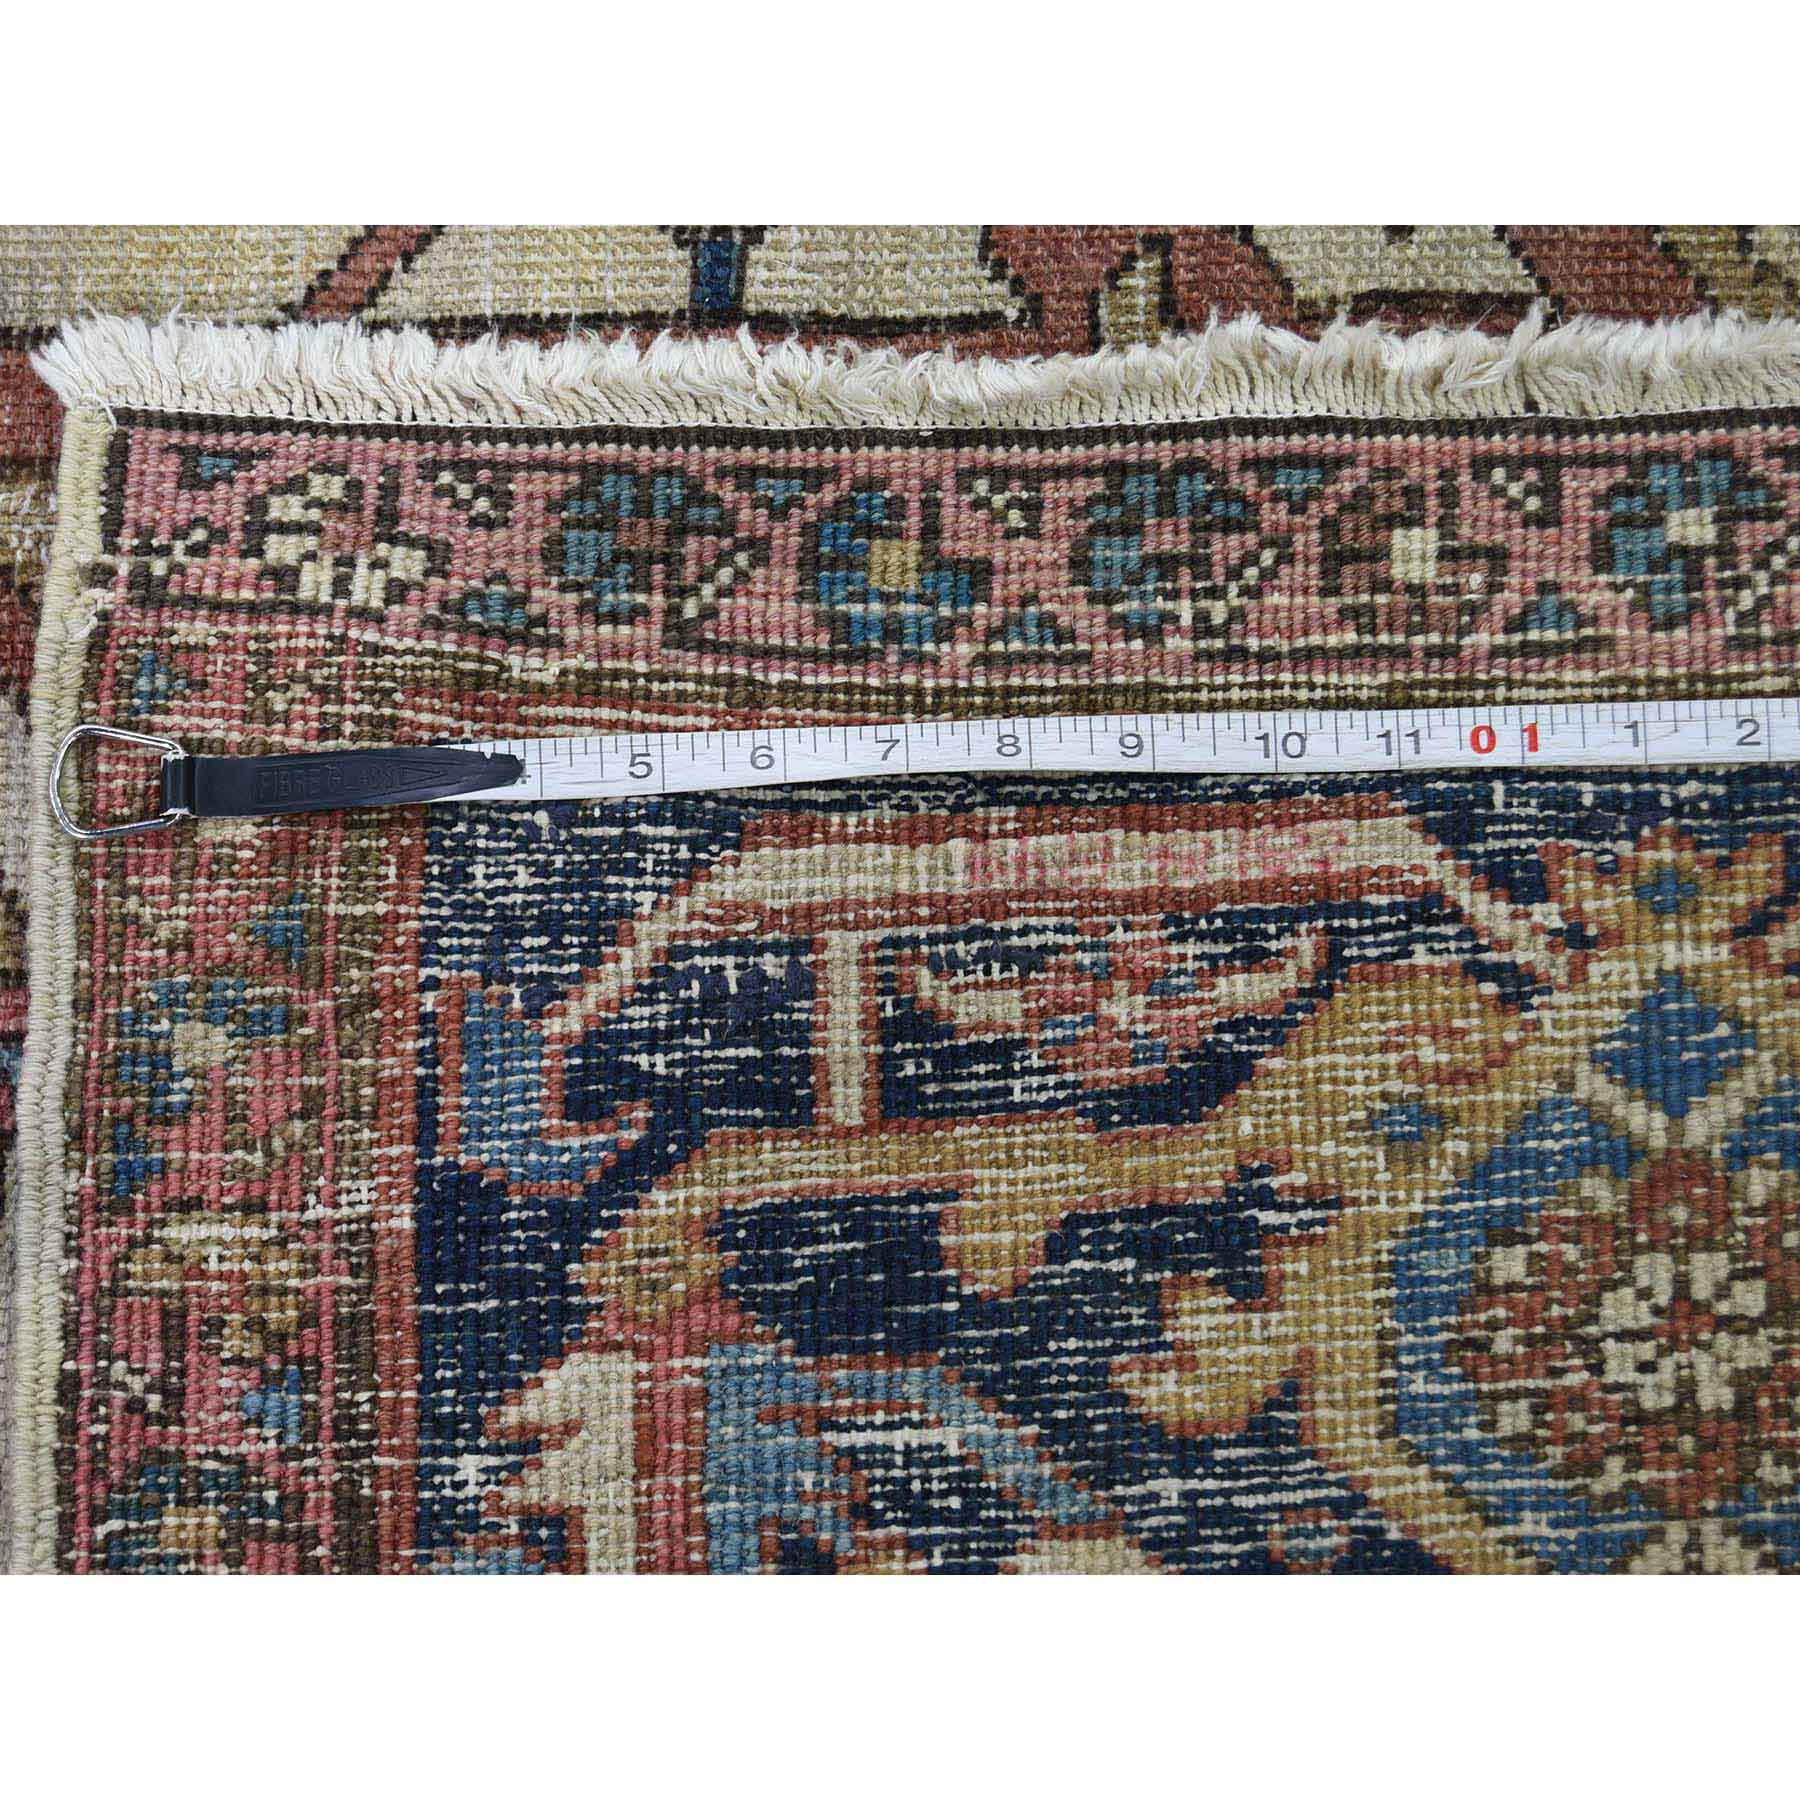 10-1 x12-8  Antique Persian Serapi Exc Cond Pure Wool Hand-Knotted Oriental Rug